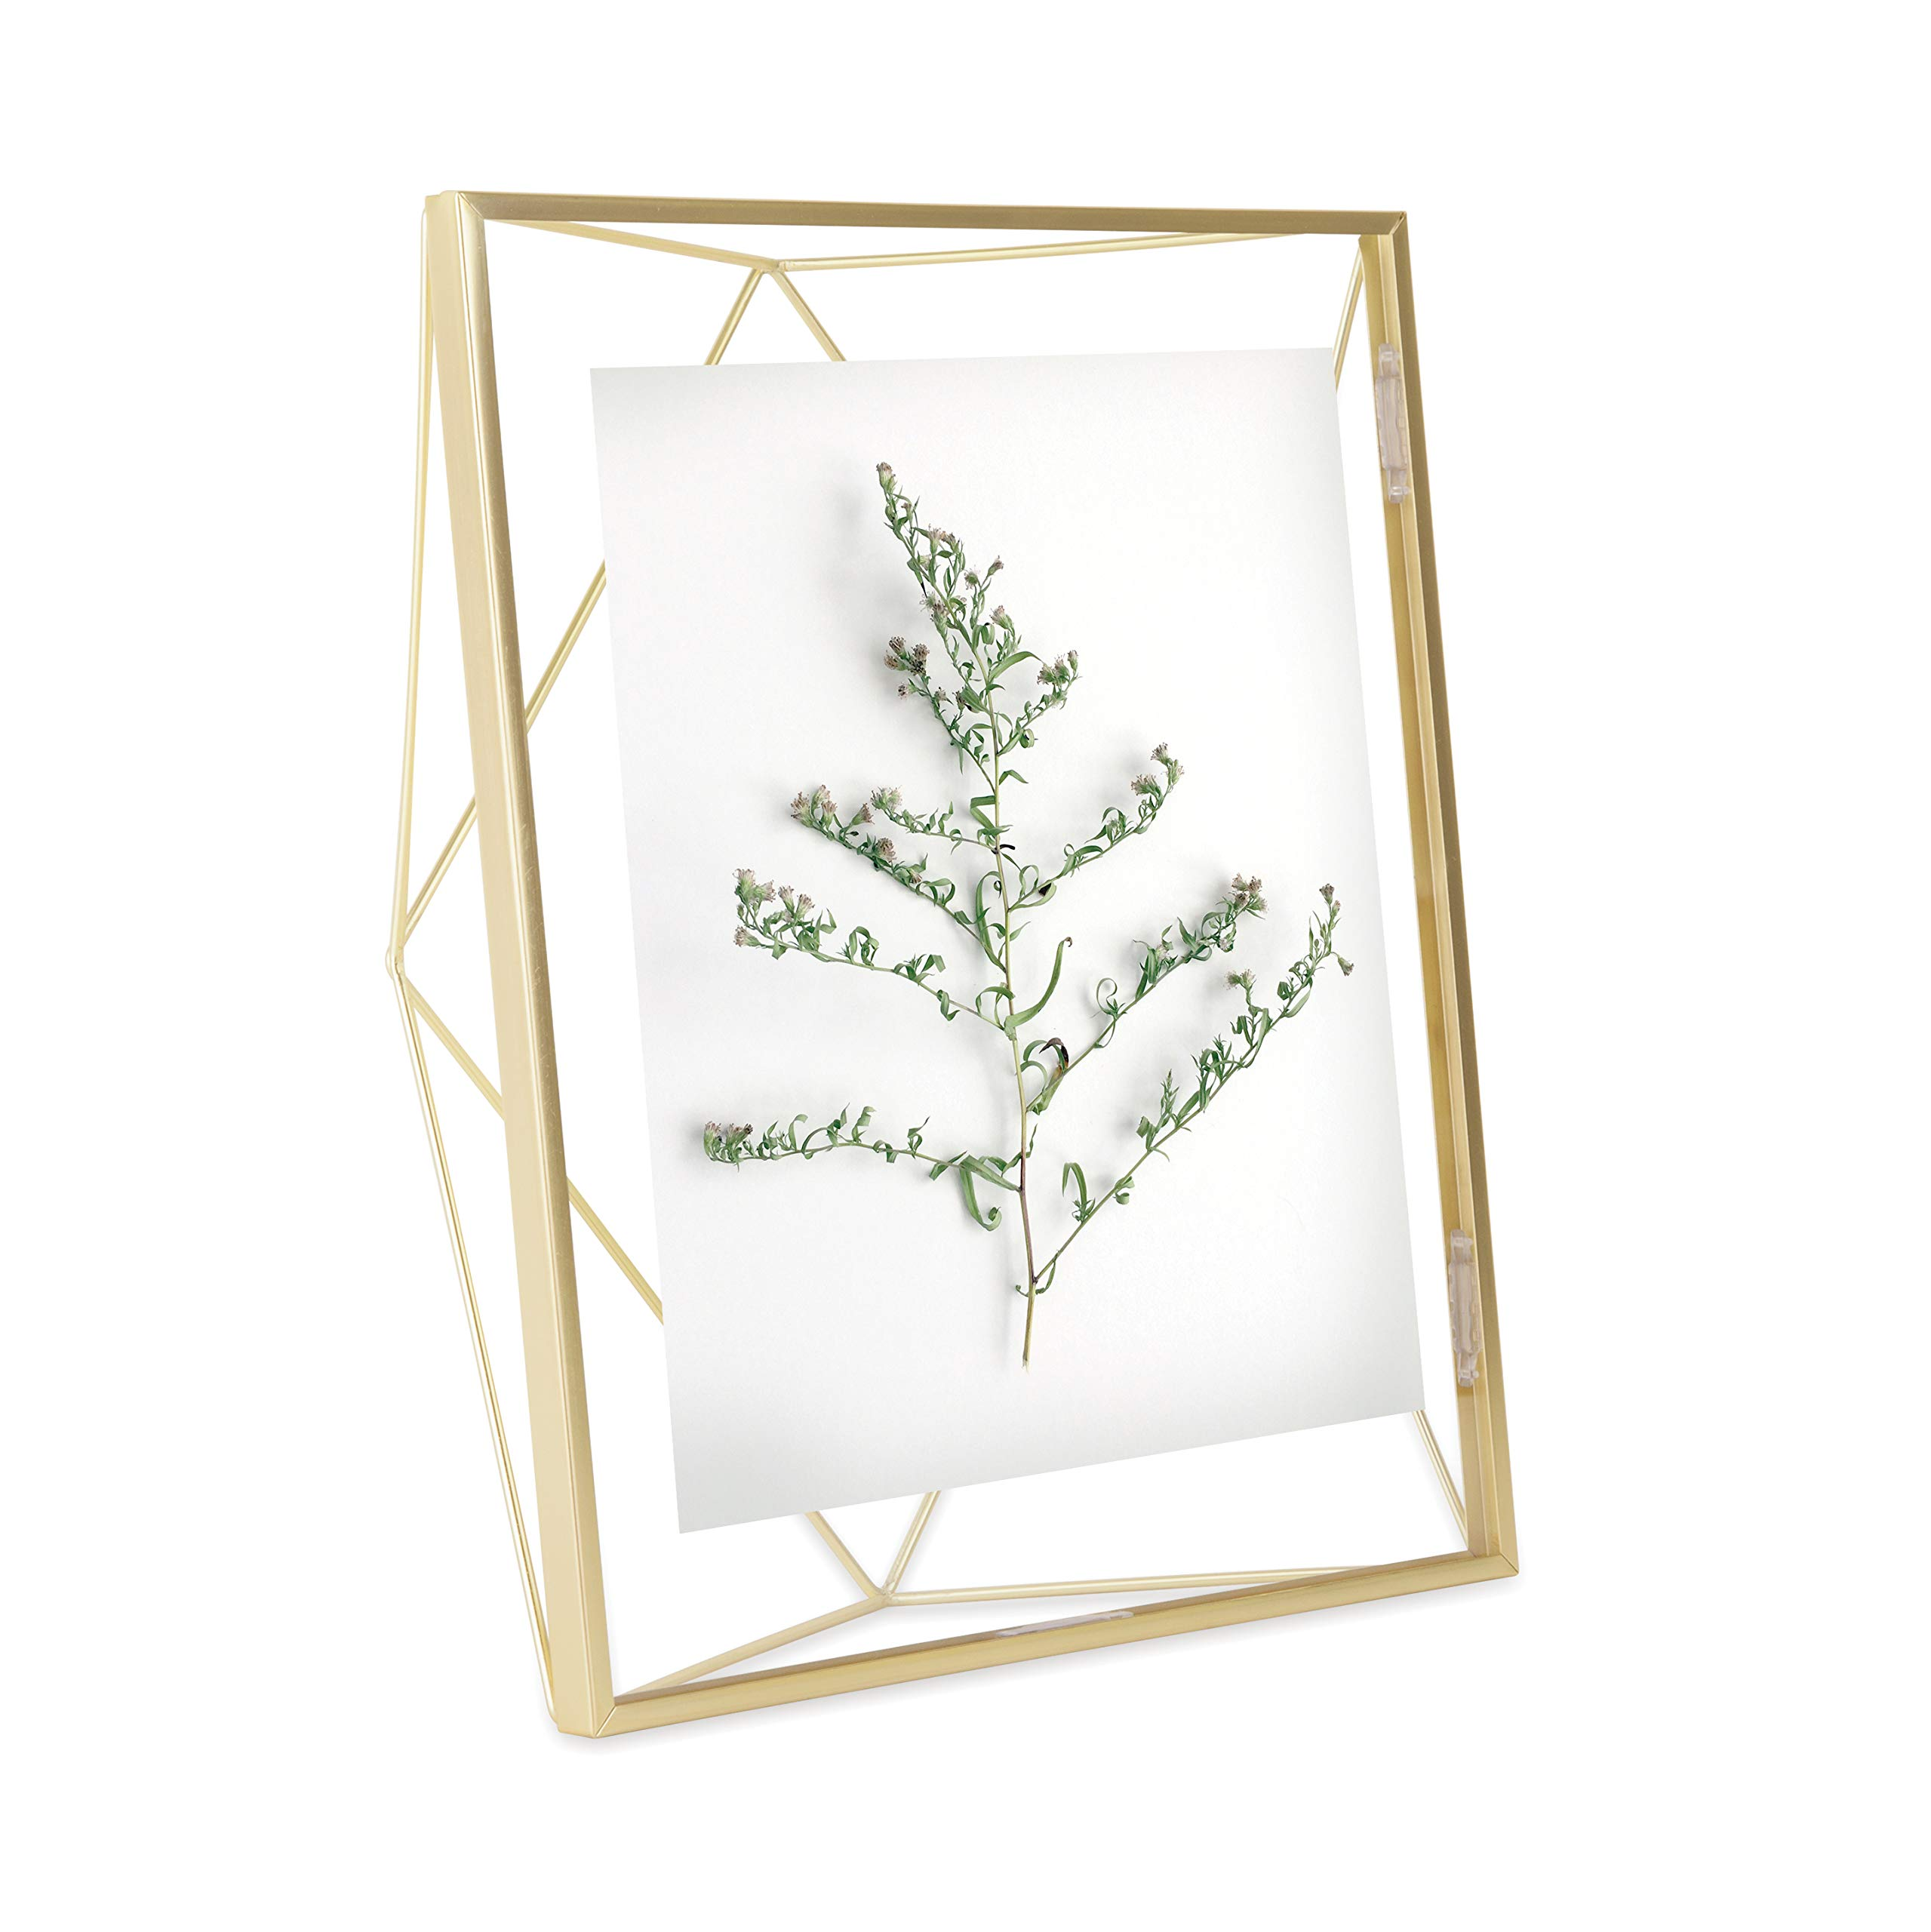 Umbra Prisma Picture Frame, 8x10 Photo Display for Desk or Wall, Brass by Umbra